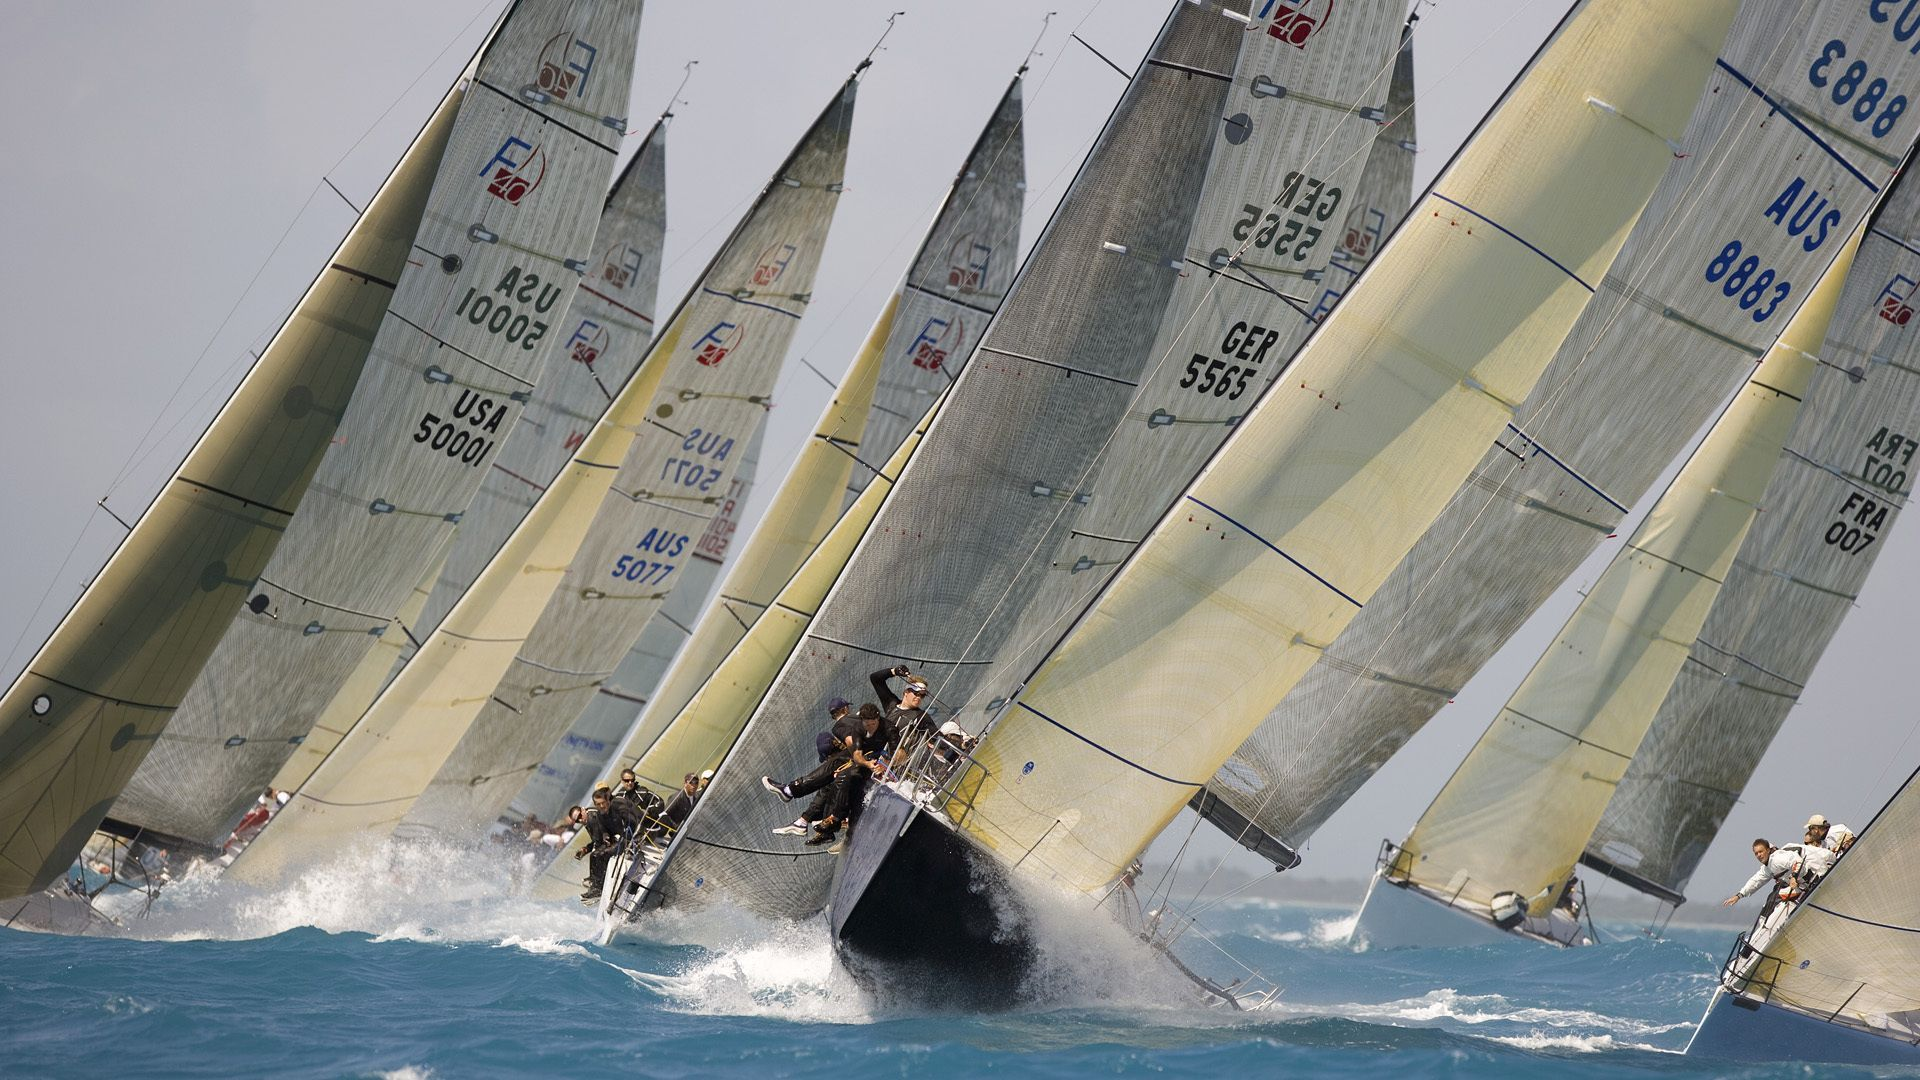 Regatta sailing race racing boat wallpaper | 1920x1080 | 128417 ...